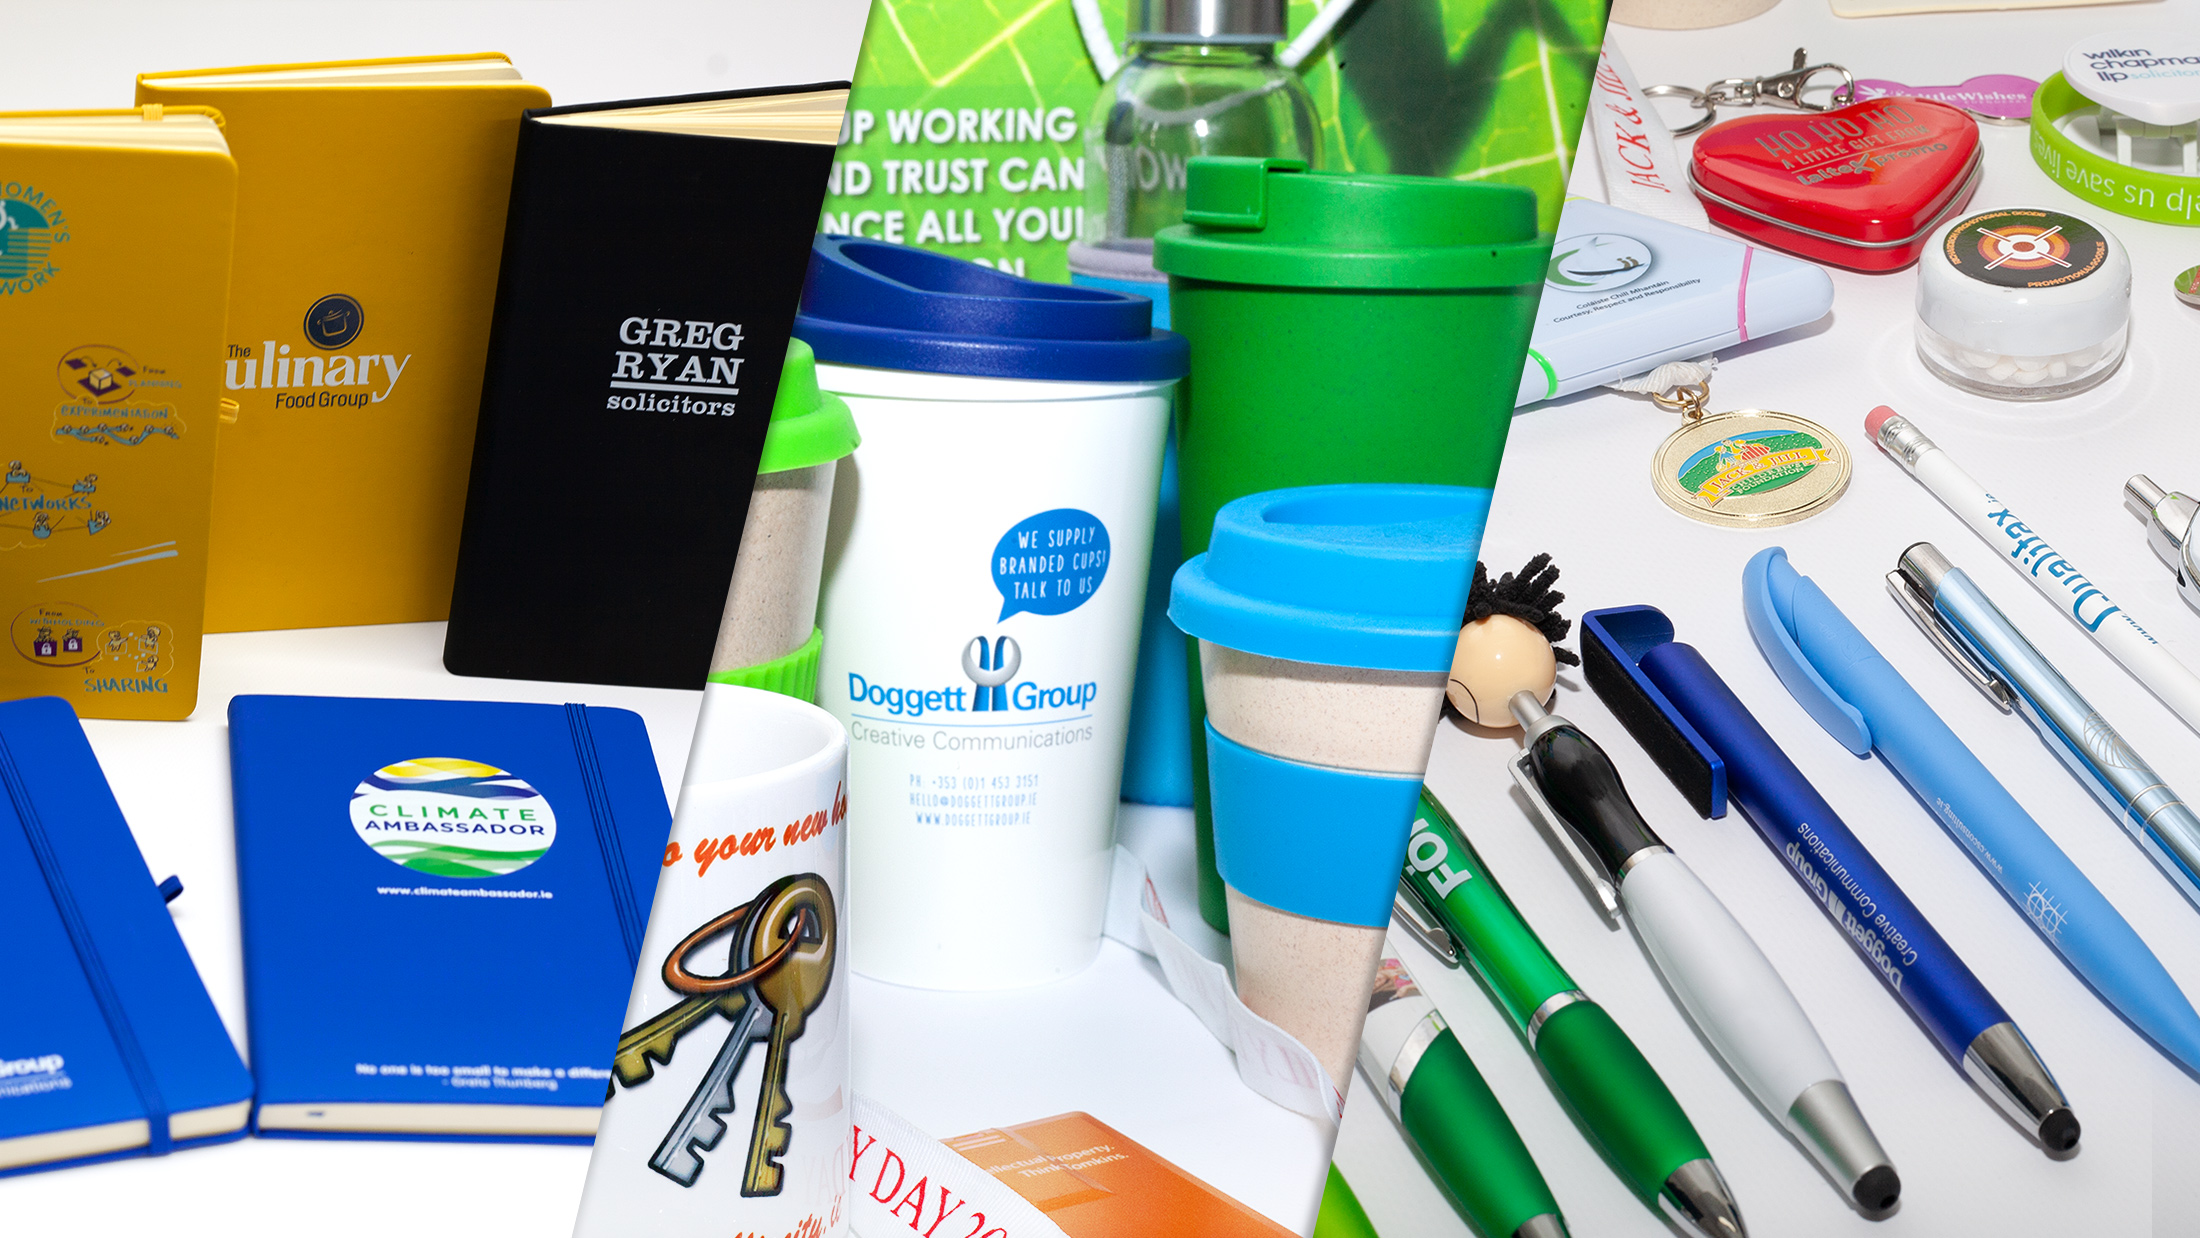 Doggett Promotional Products